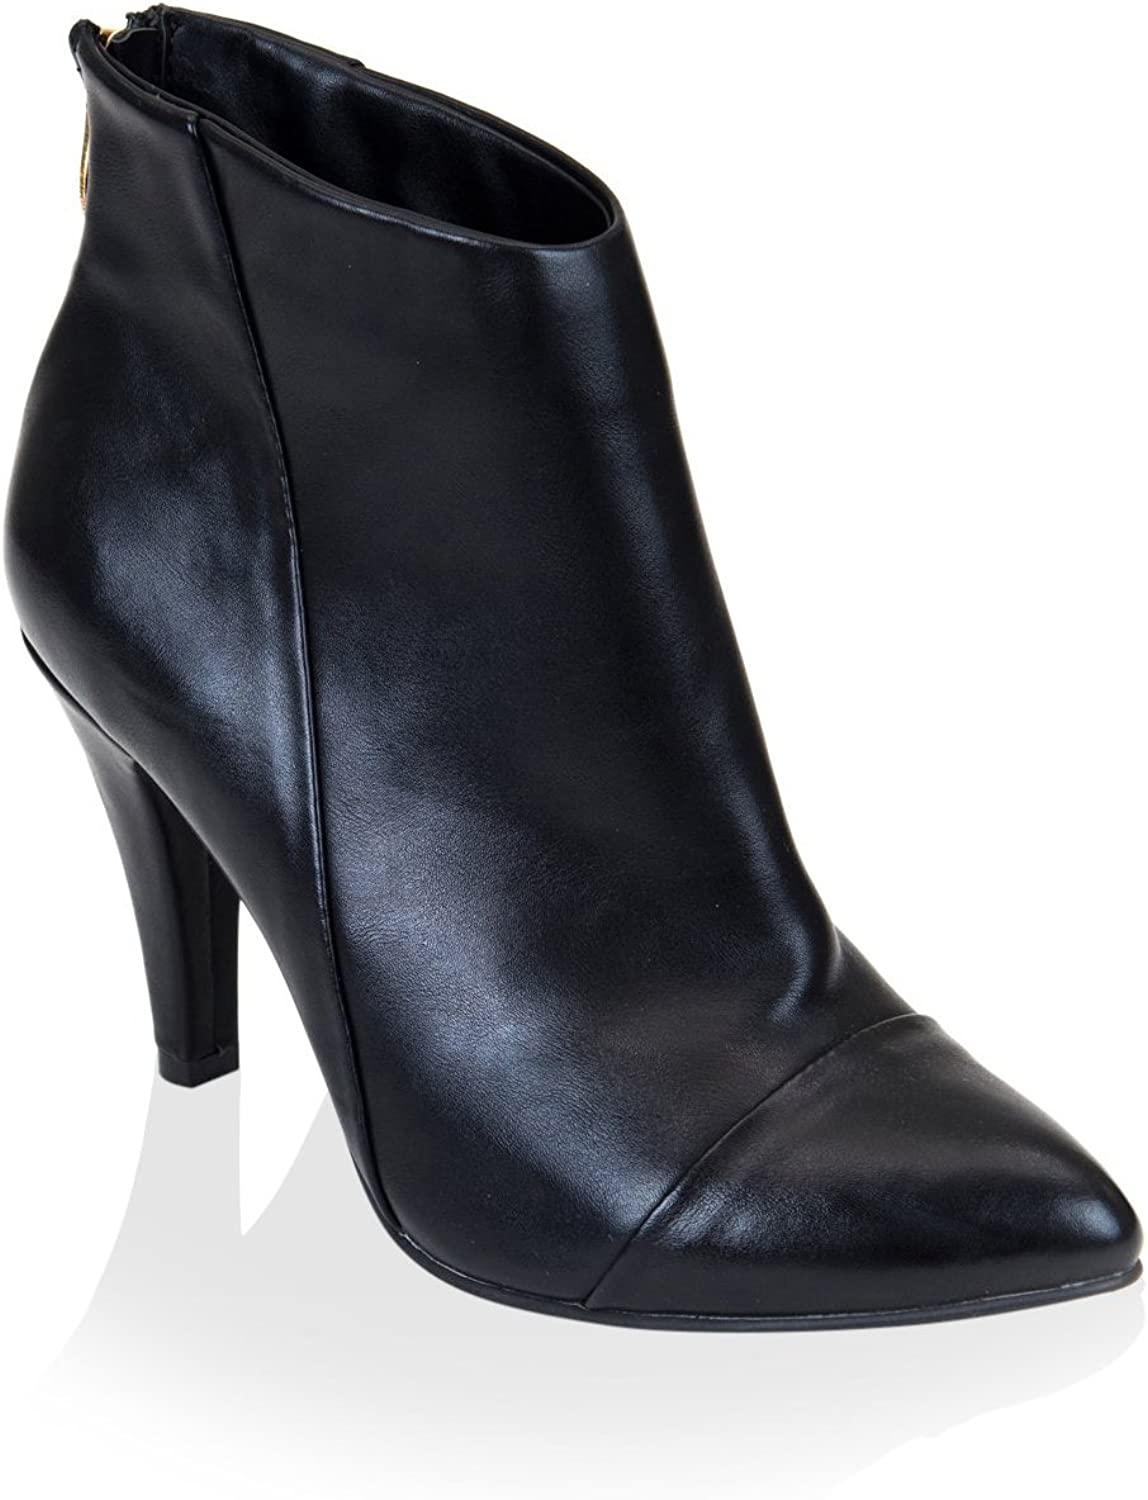 Gc shoes Women's Classic Beauty Ankle Boot